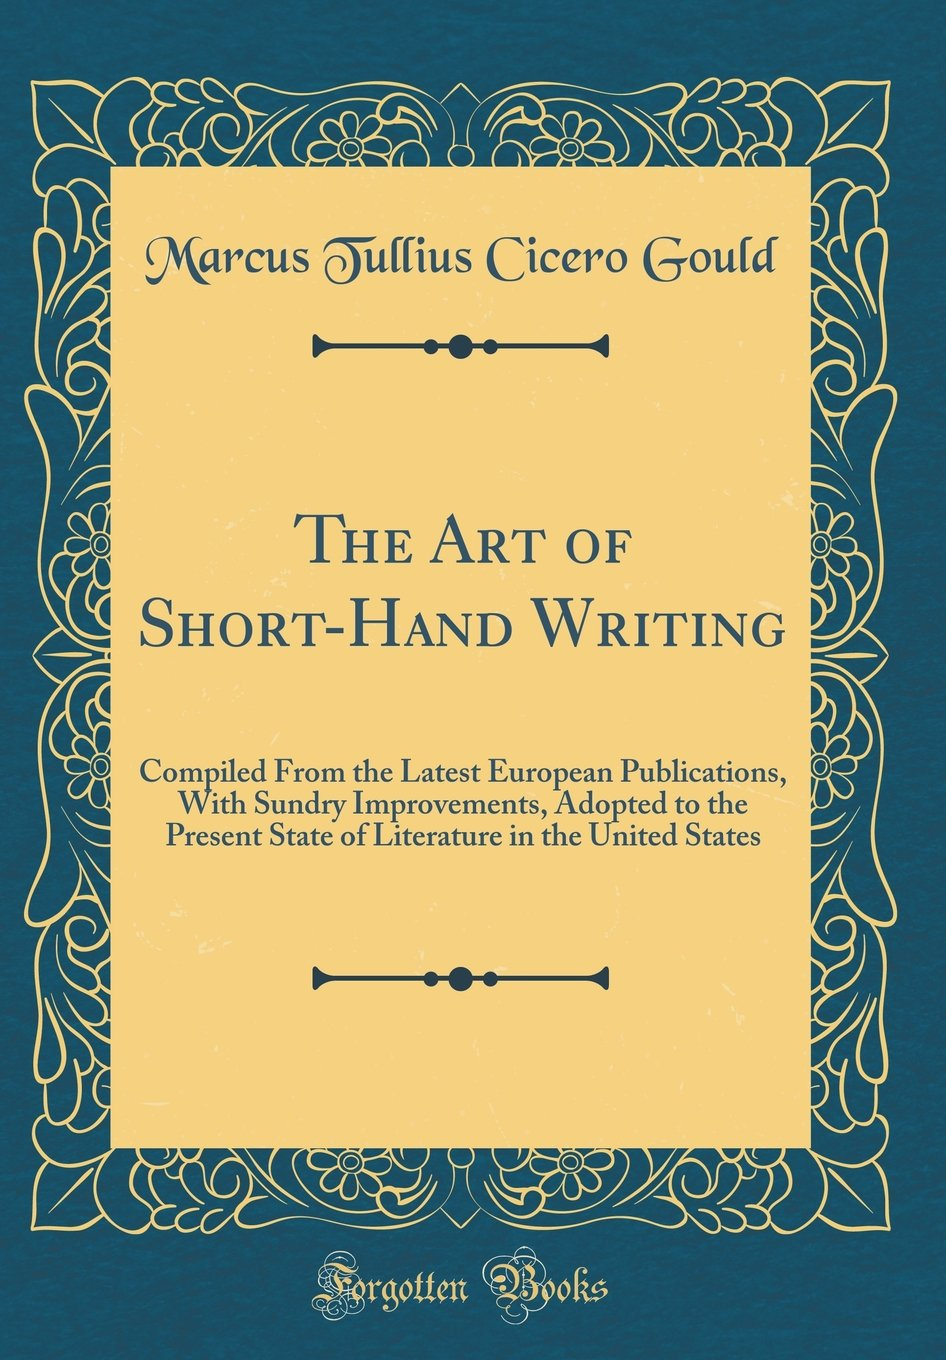 The Art of Short-Hand Writing: Compiled From the Latest European Publications, With Sundry Improvements, Adopted to the Present State of Literature in the United States (Classic Reprint) PDF